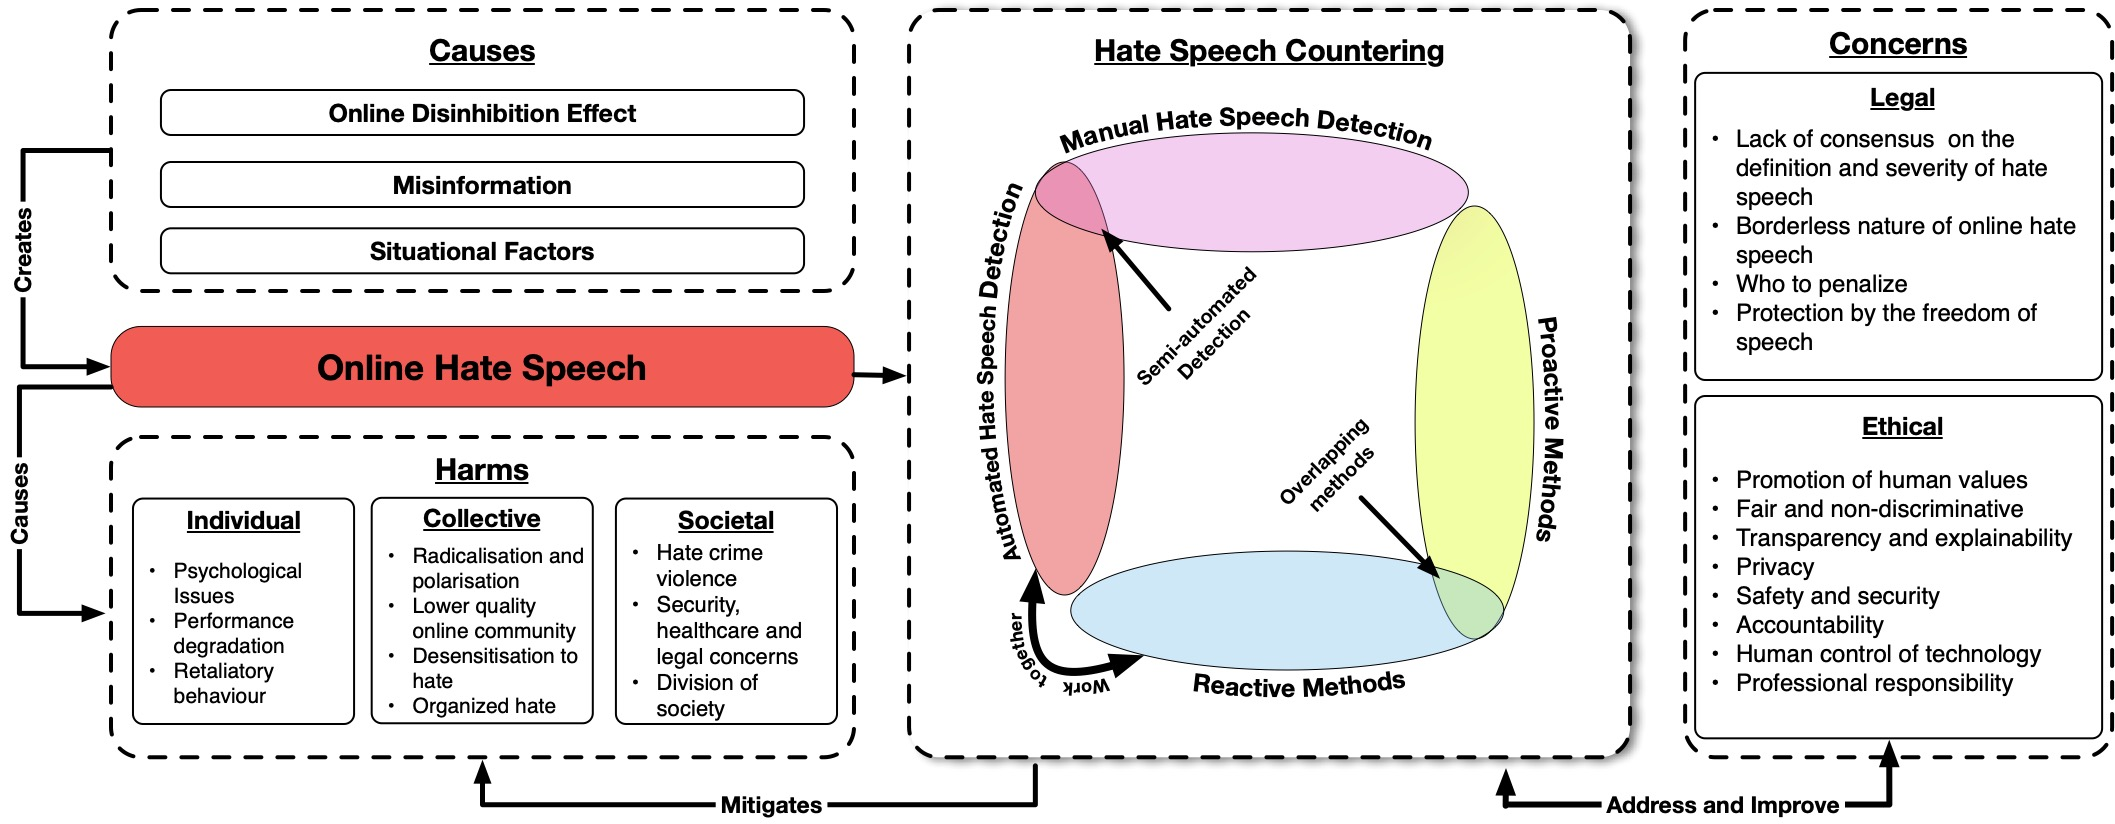 Countering online hate speech conceptual framework. Ethical concerns from